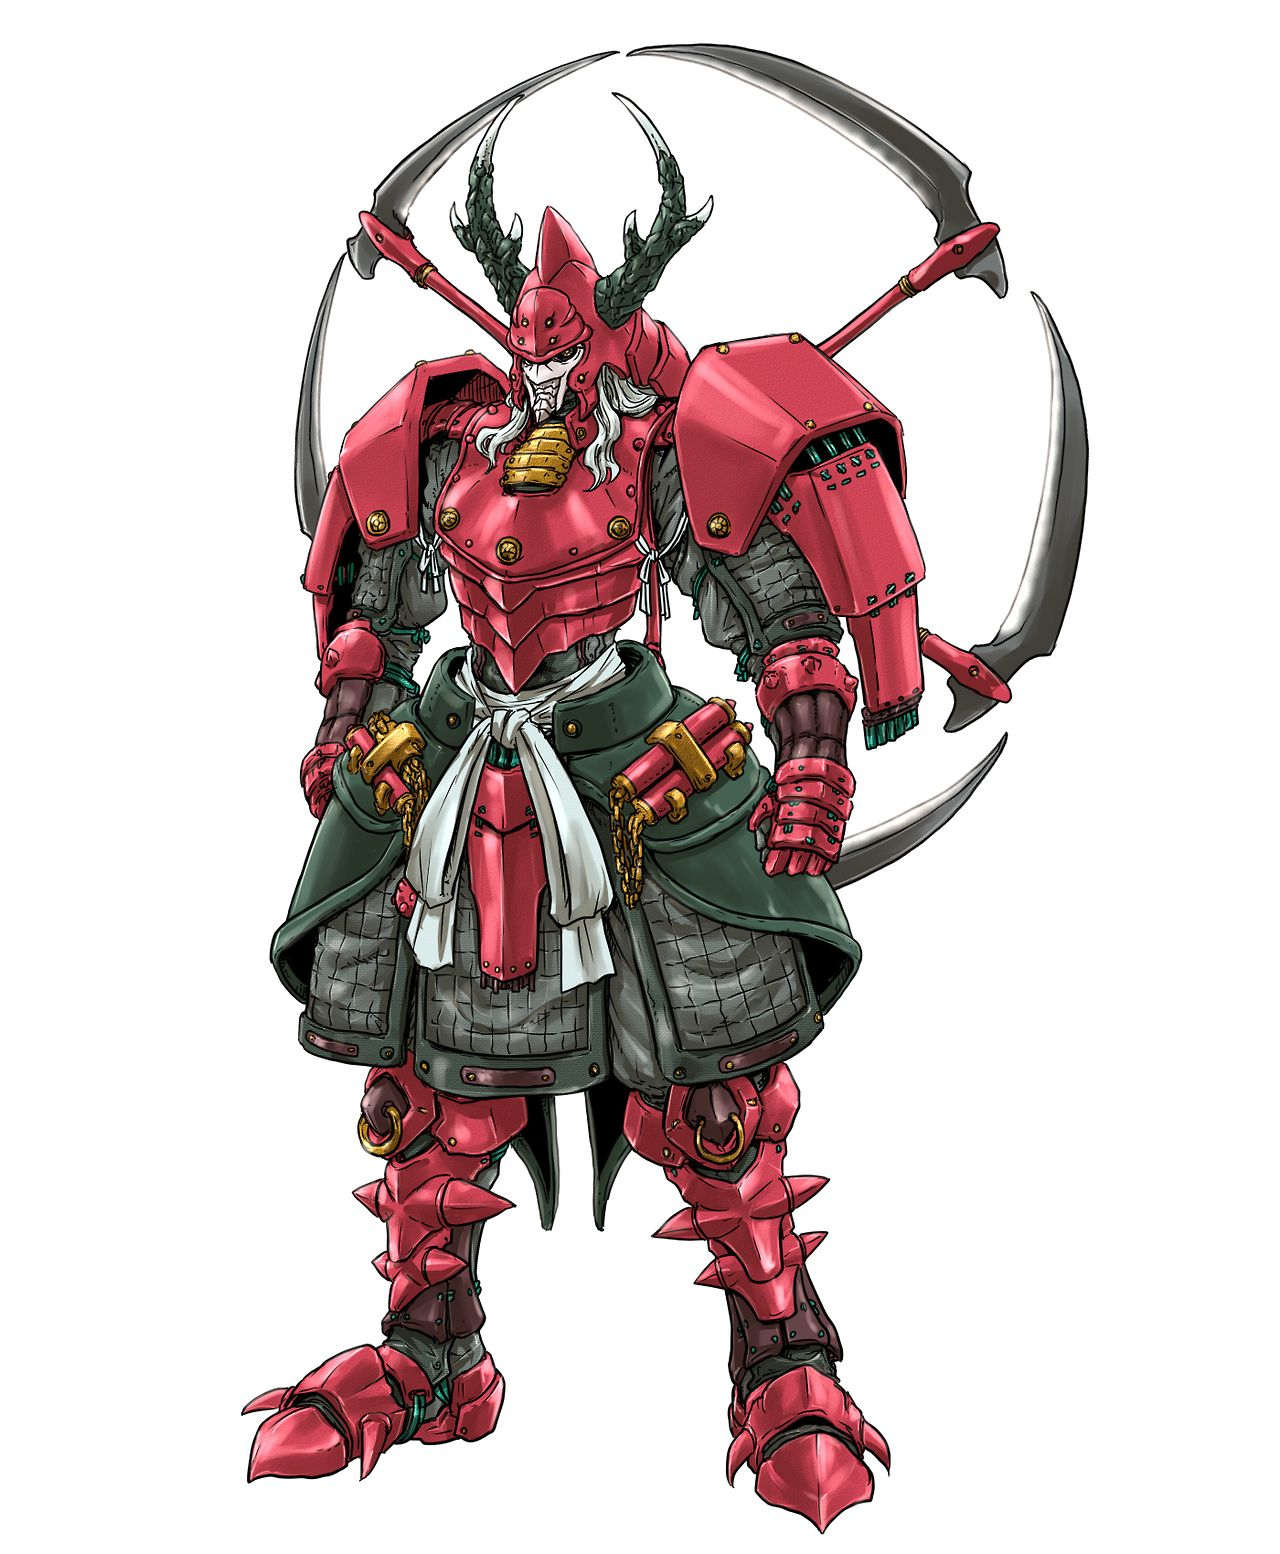 Samurai troopers rajura yoroiden samurai troopers - Ronin warriors warlords ...